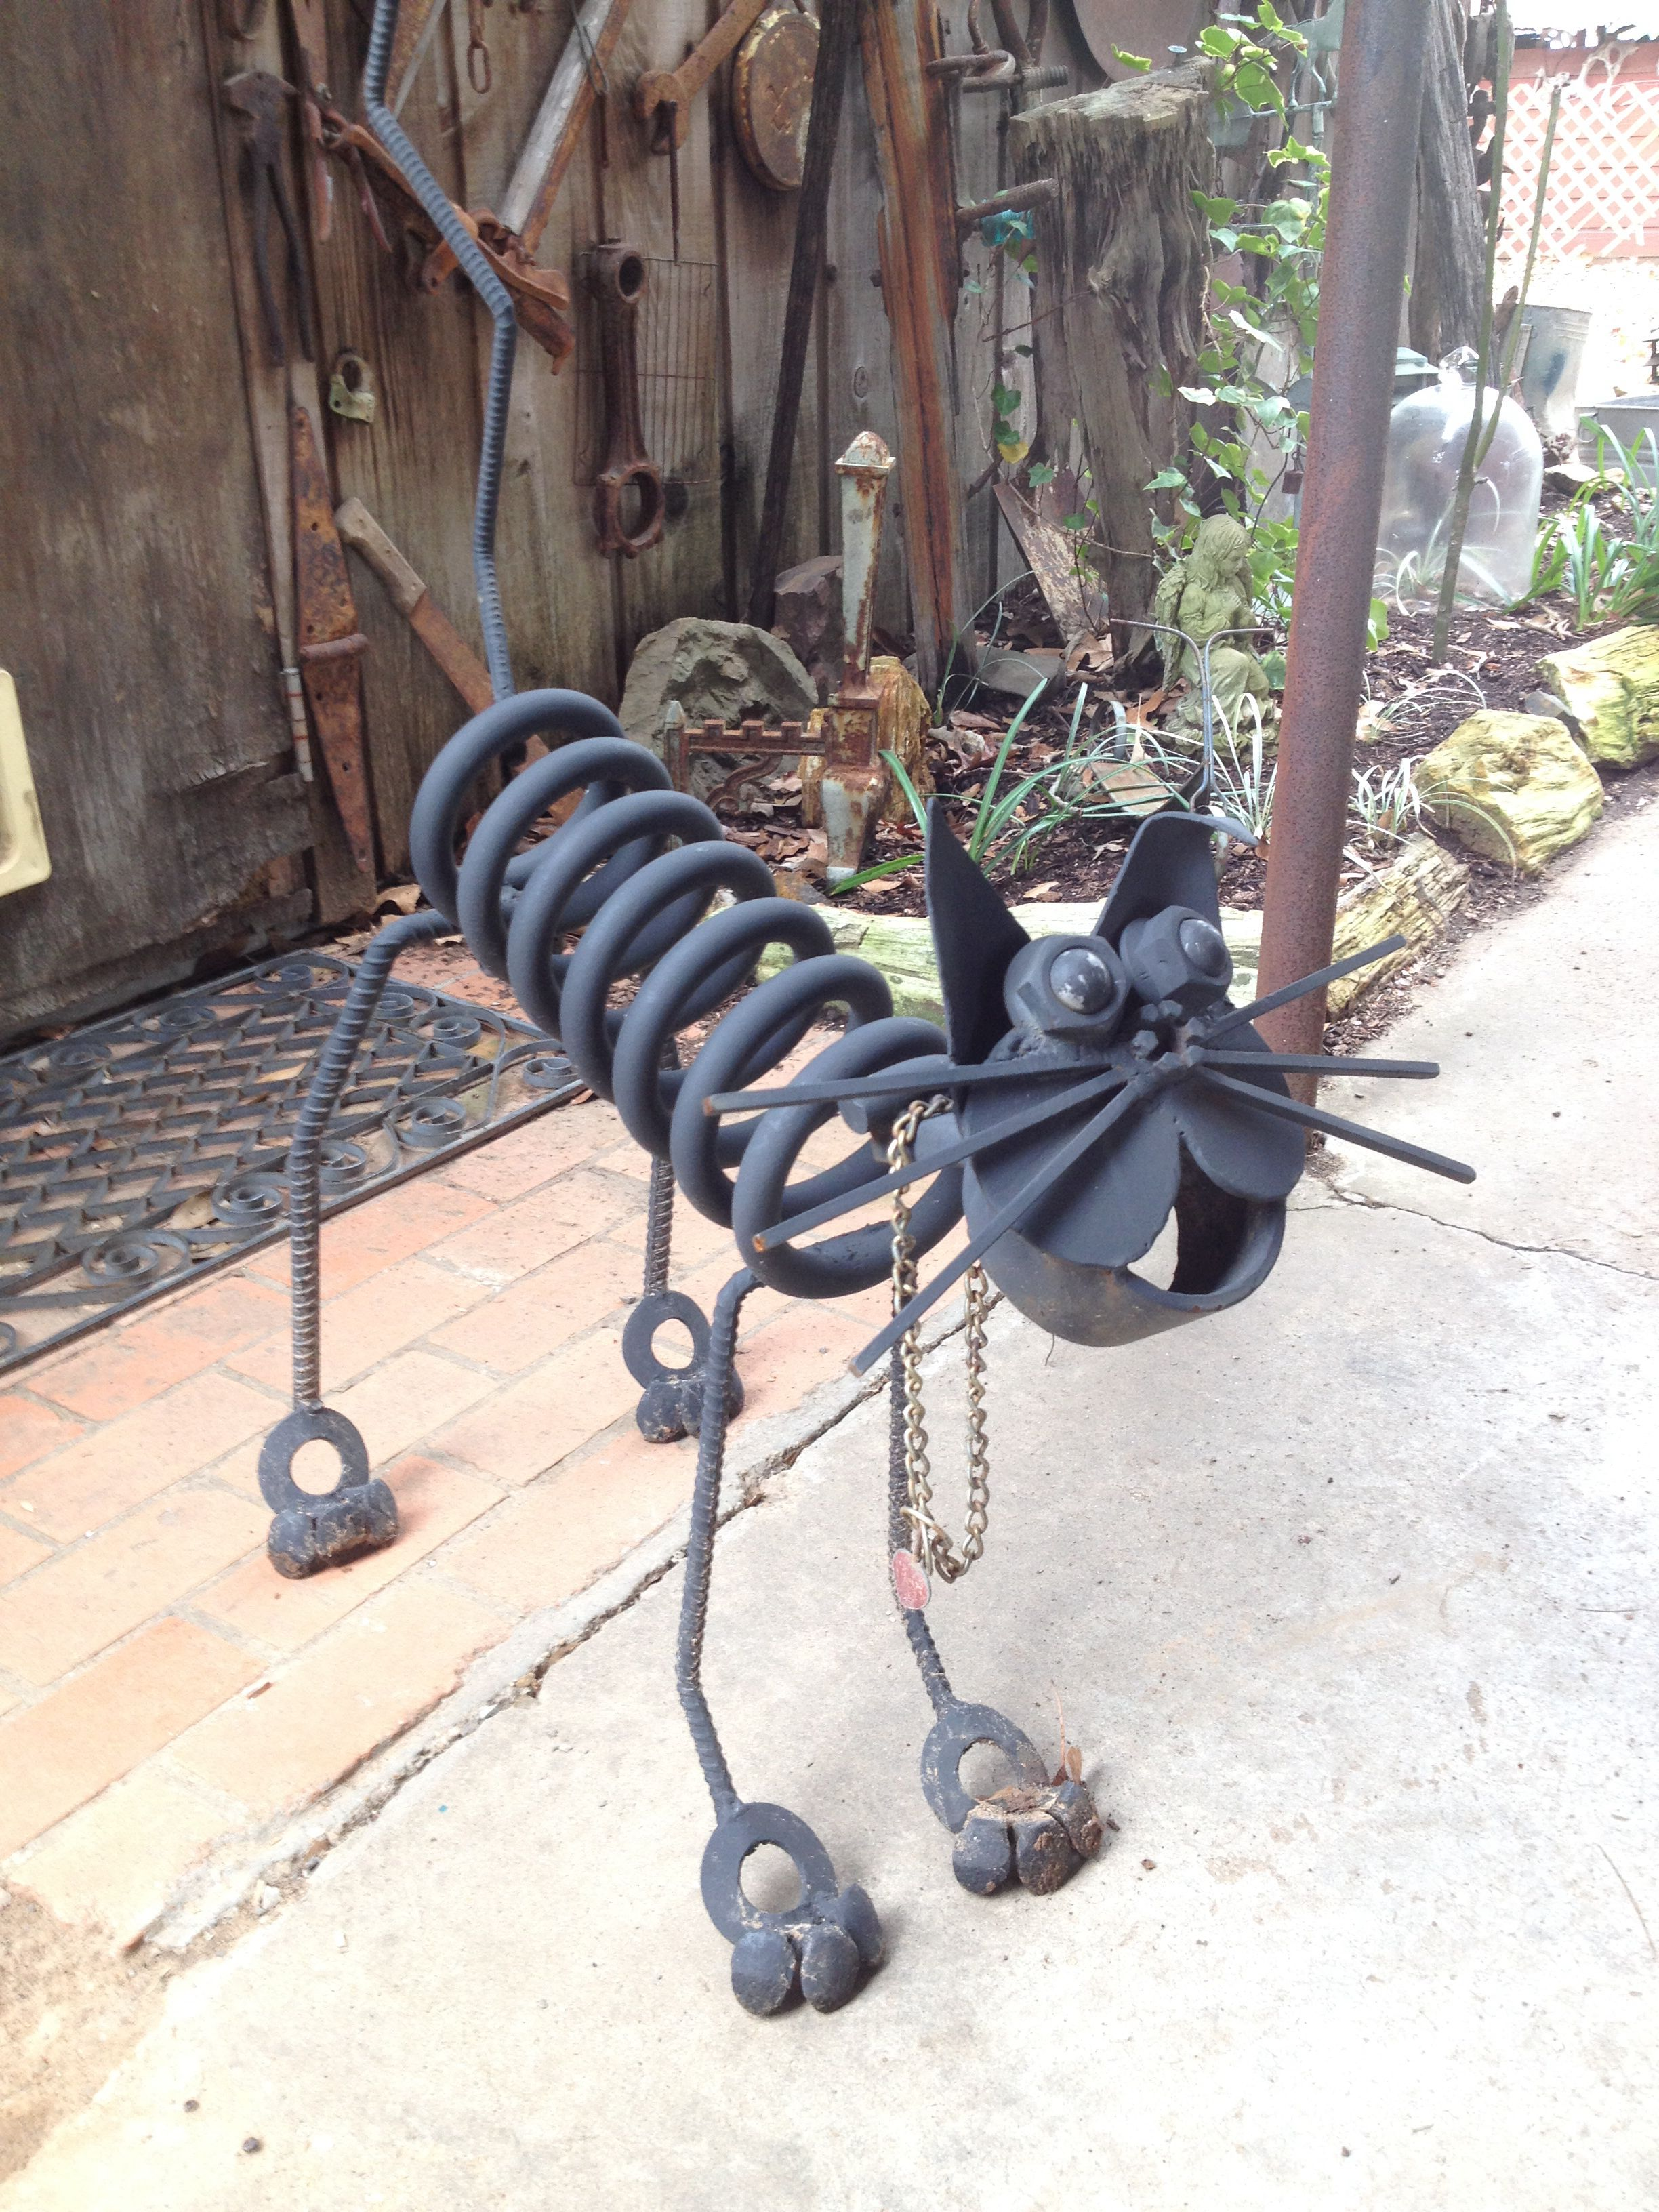 Astuces Bricolage Recup Welded Metal Cat I Made This Crook Cat Made Of Car Parts